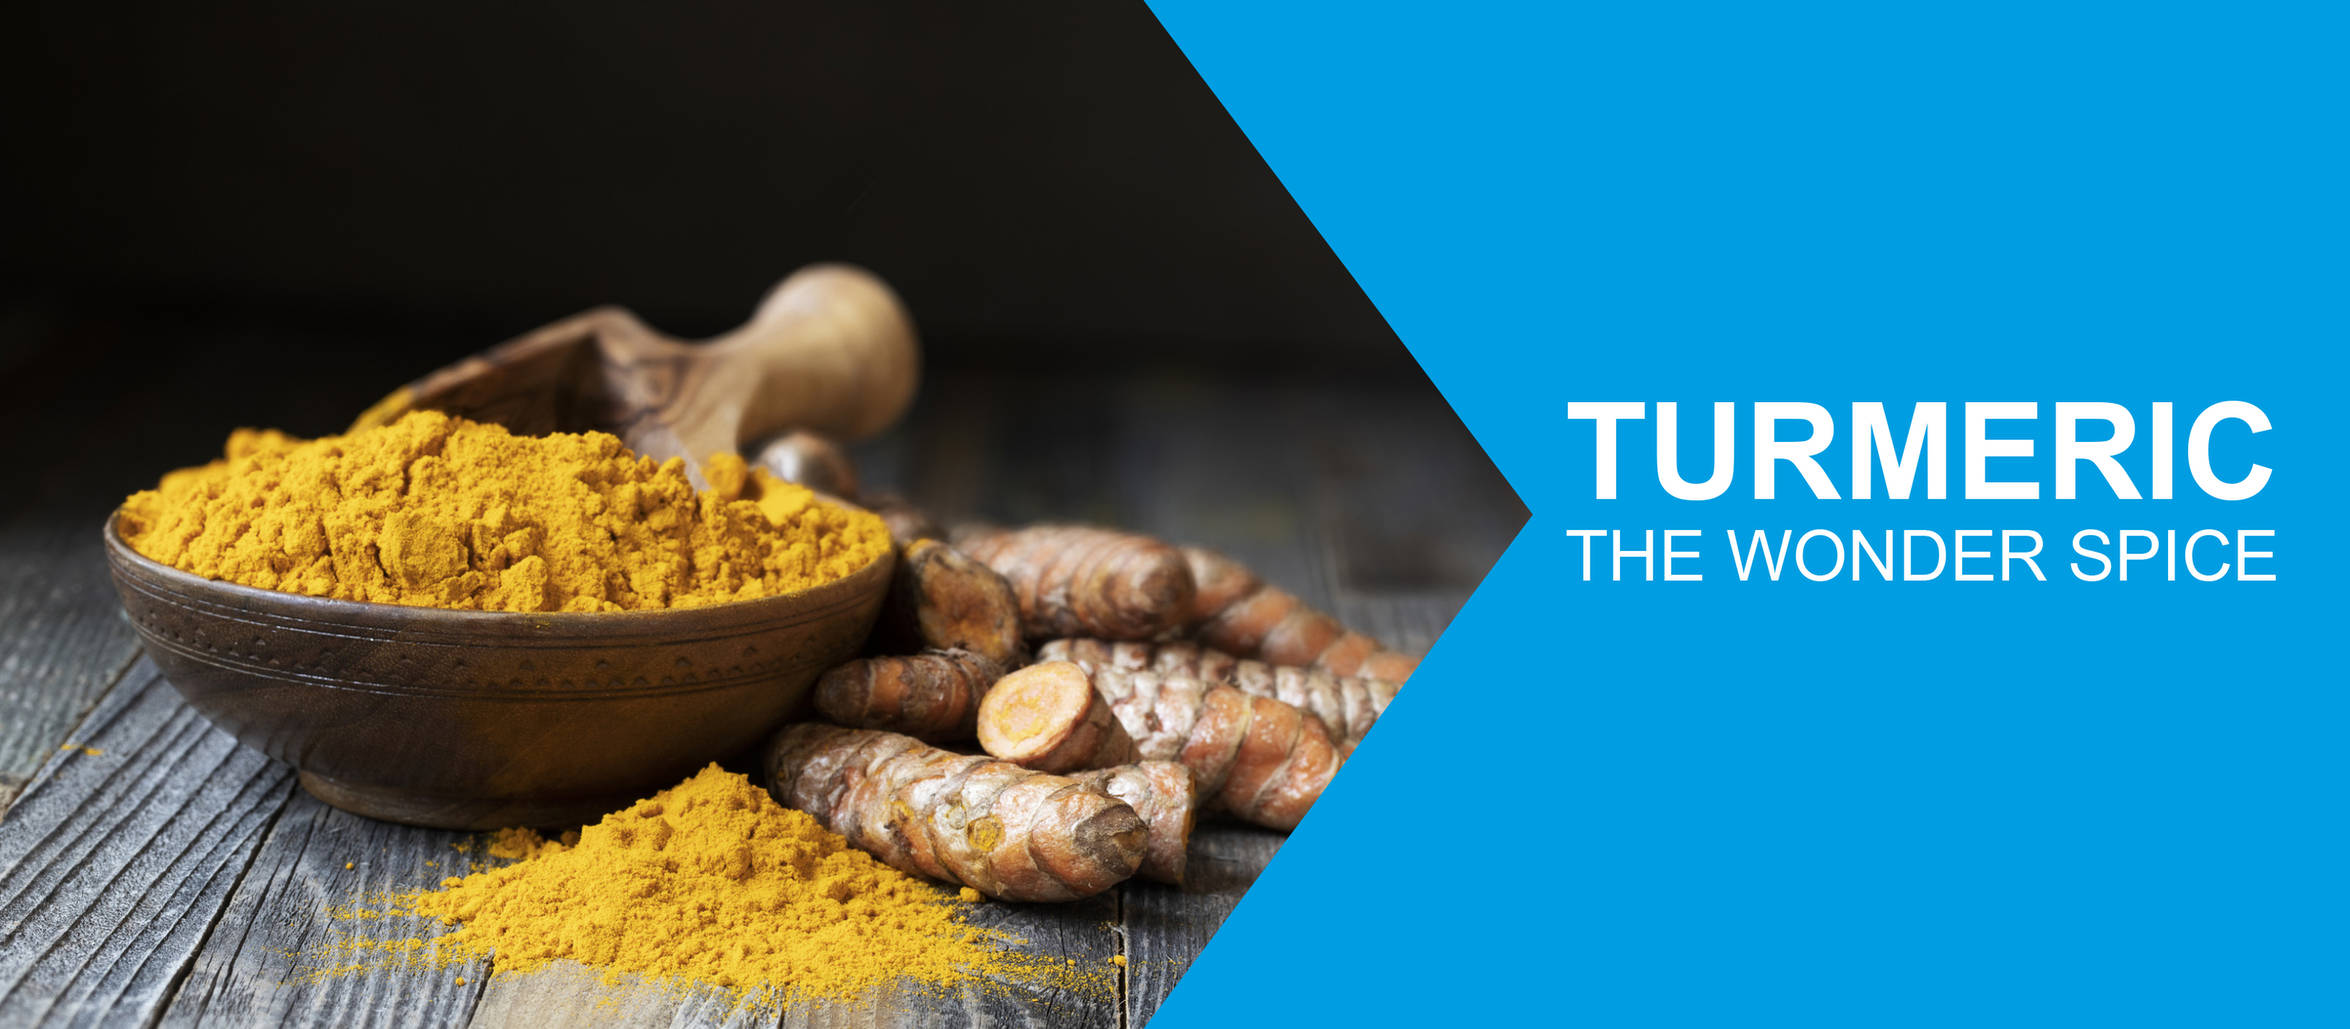 "Bowl of turmeric surrounded by fresh ginger, overlayed with the title "" Turmeric the wonder spice"""